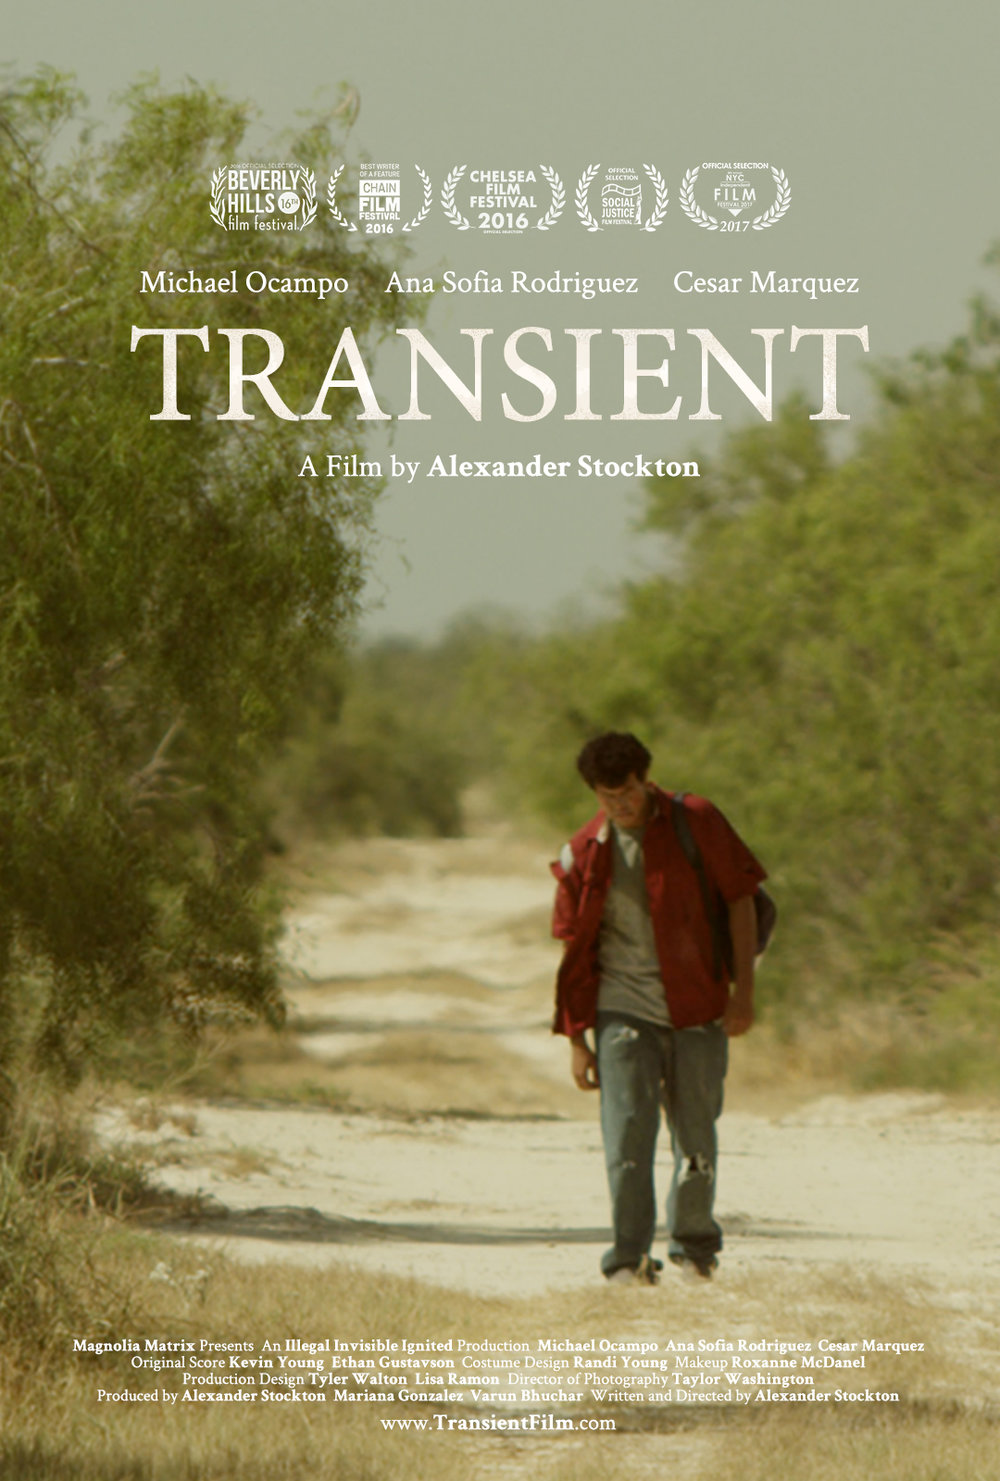 Transient_Poster_Small.jpg